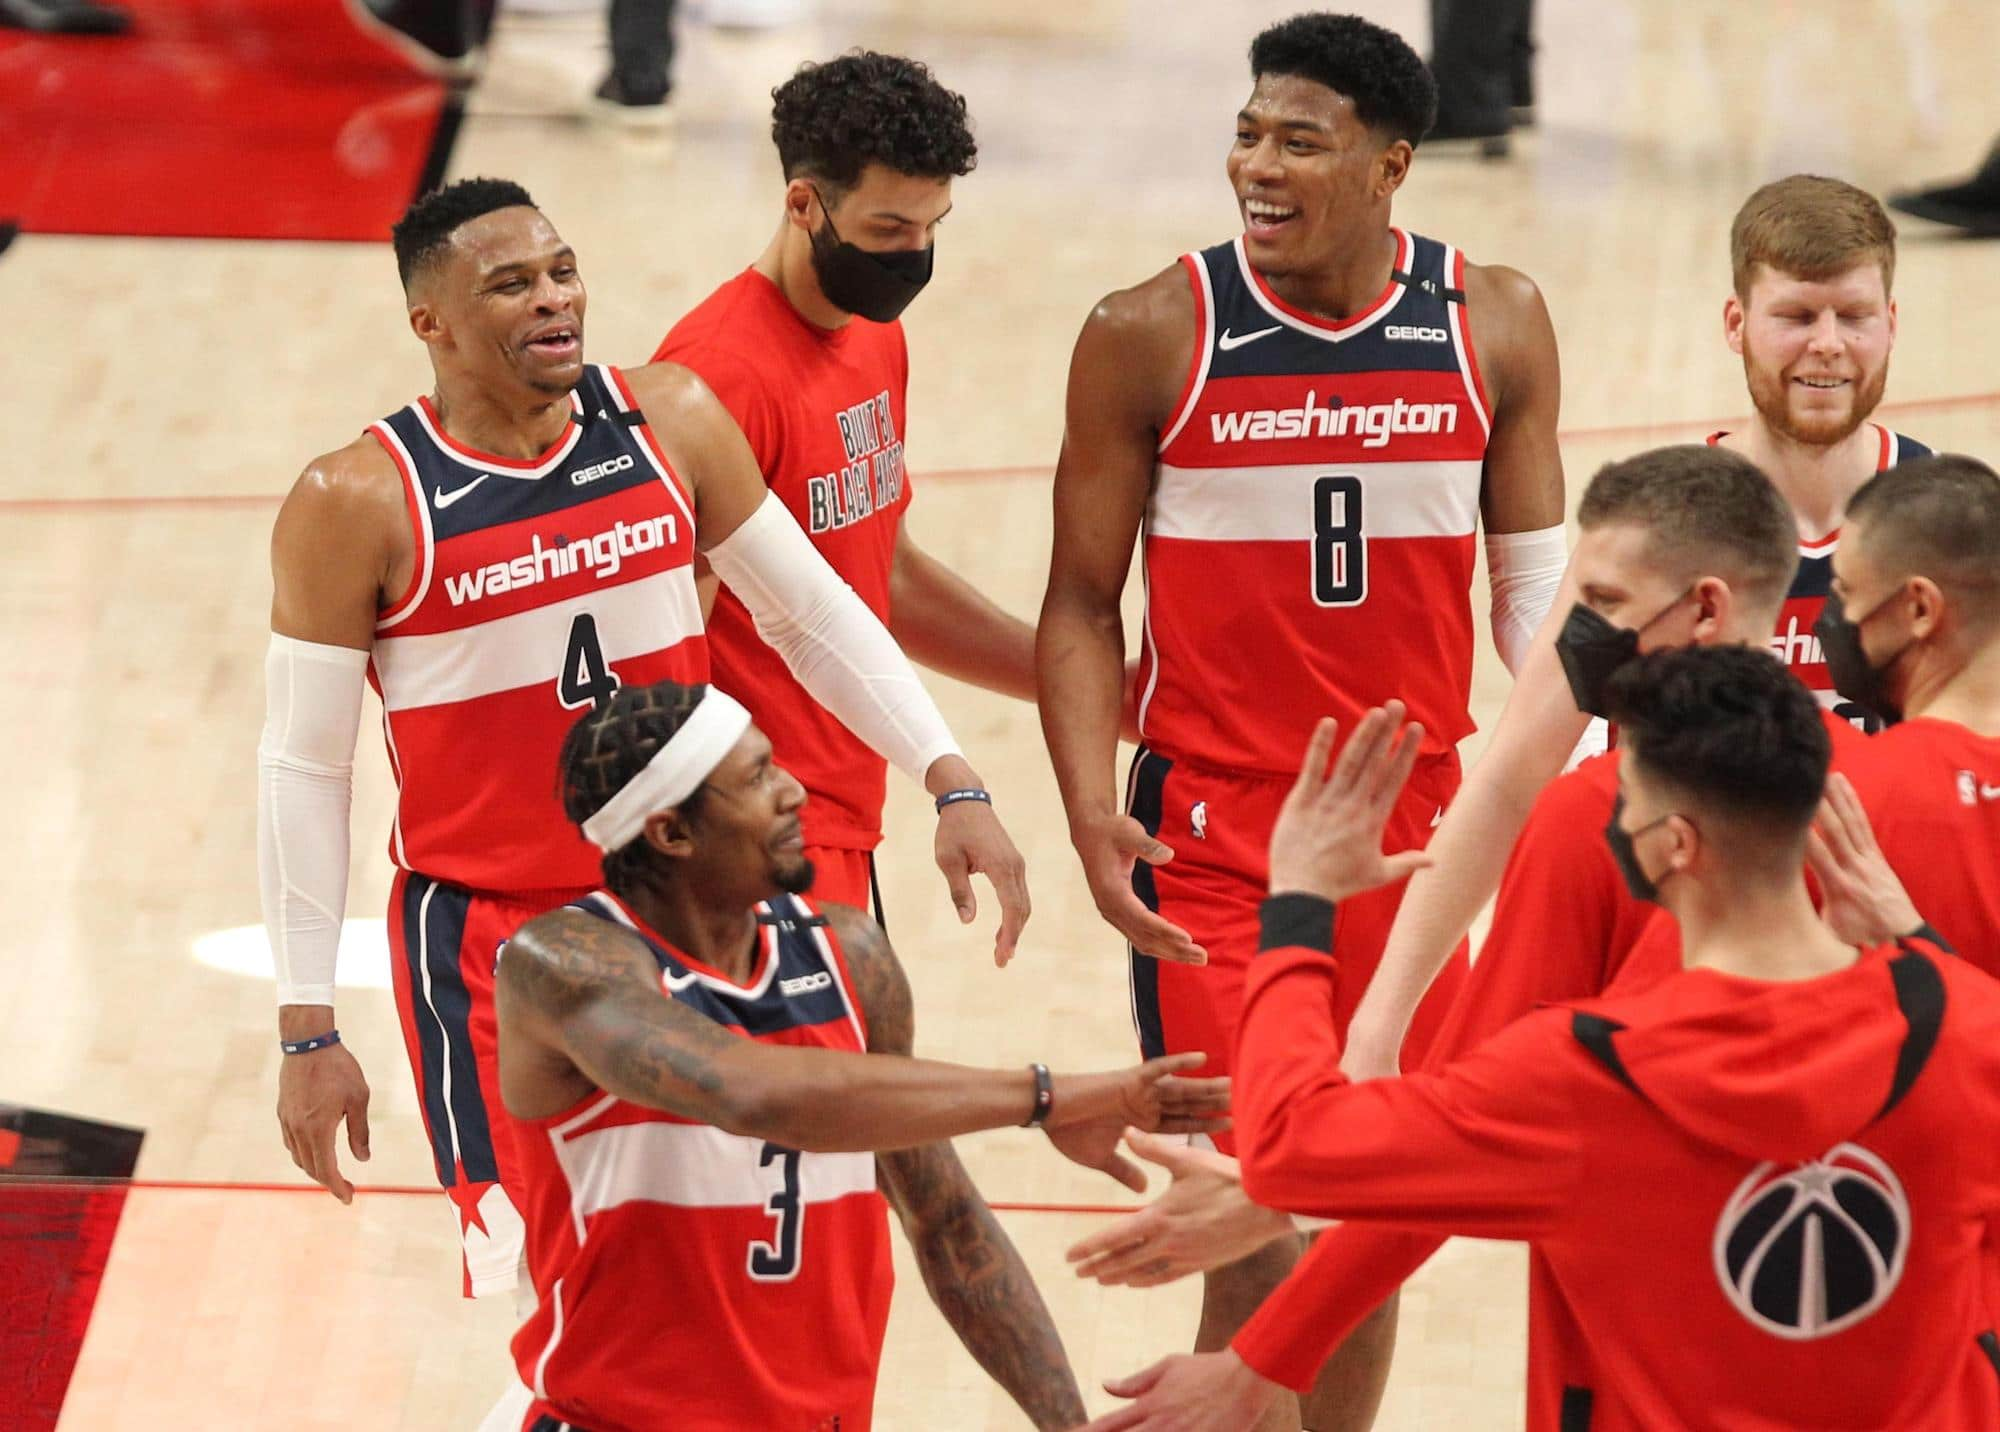 wizards-at-lakers-lineups-injury-portray-and-broadcast-files-for-monday.jpg